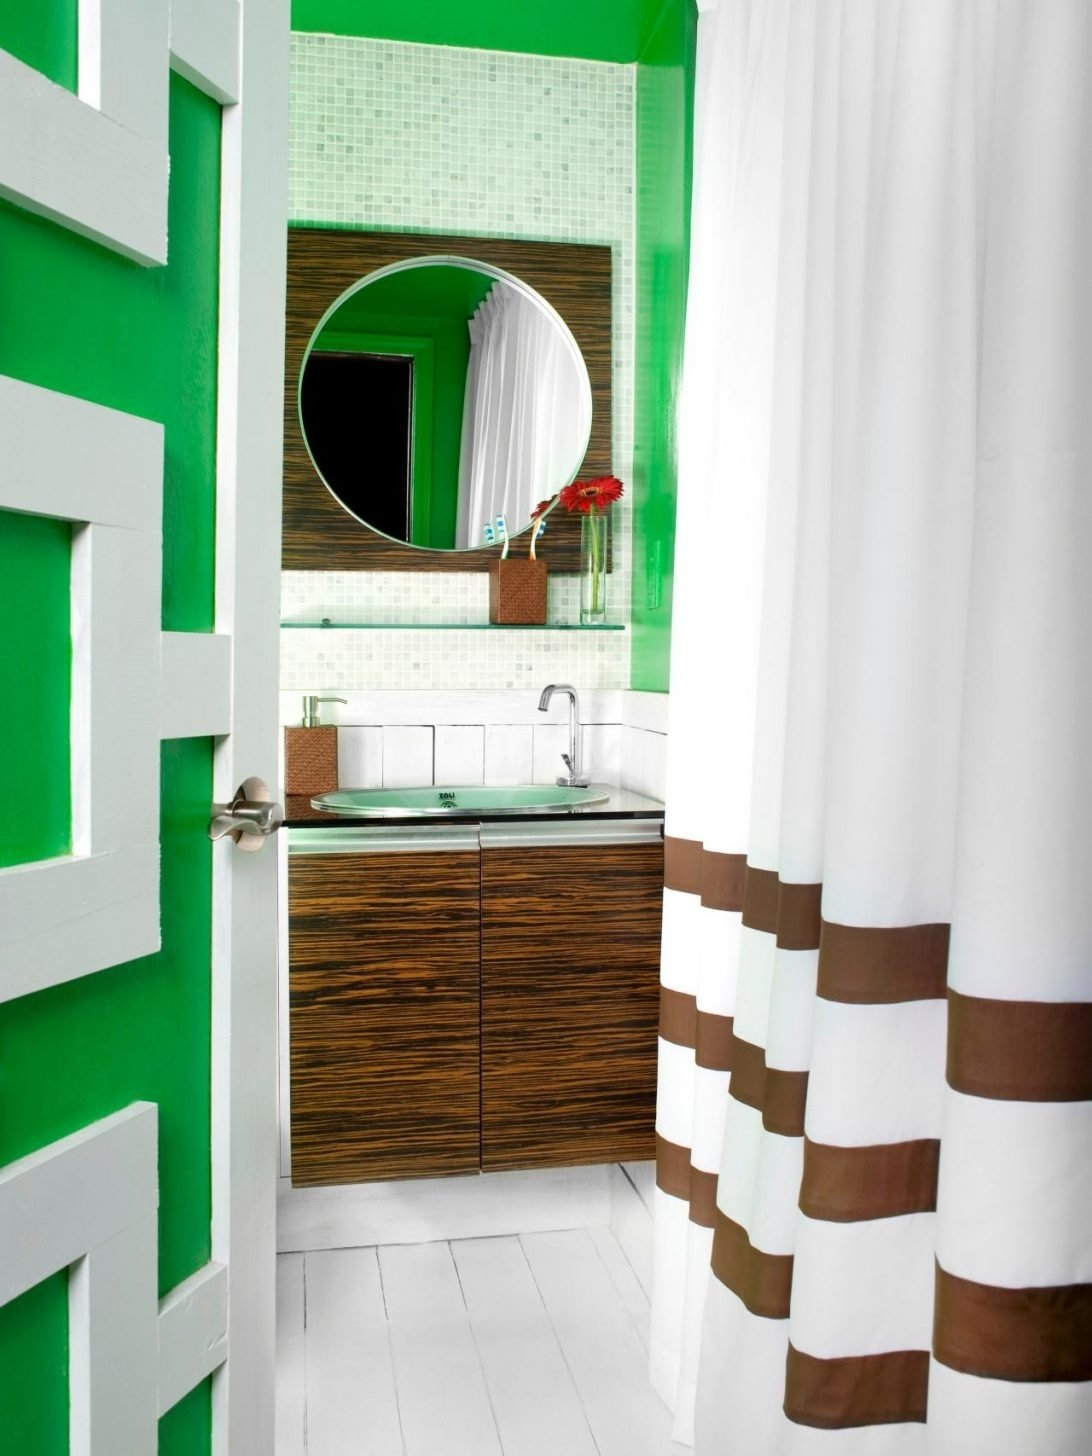 10 Famous Bathroom Color Ideas For Small Bathrooms 64 most matchless popular paint colors for small bathrooms bathroom 2020